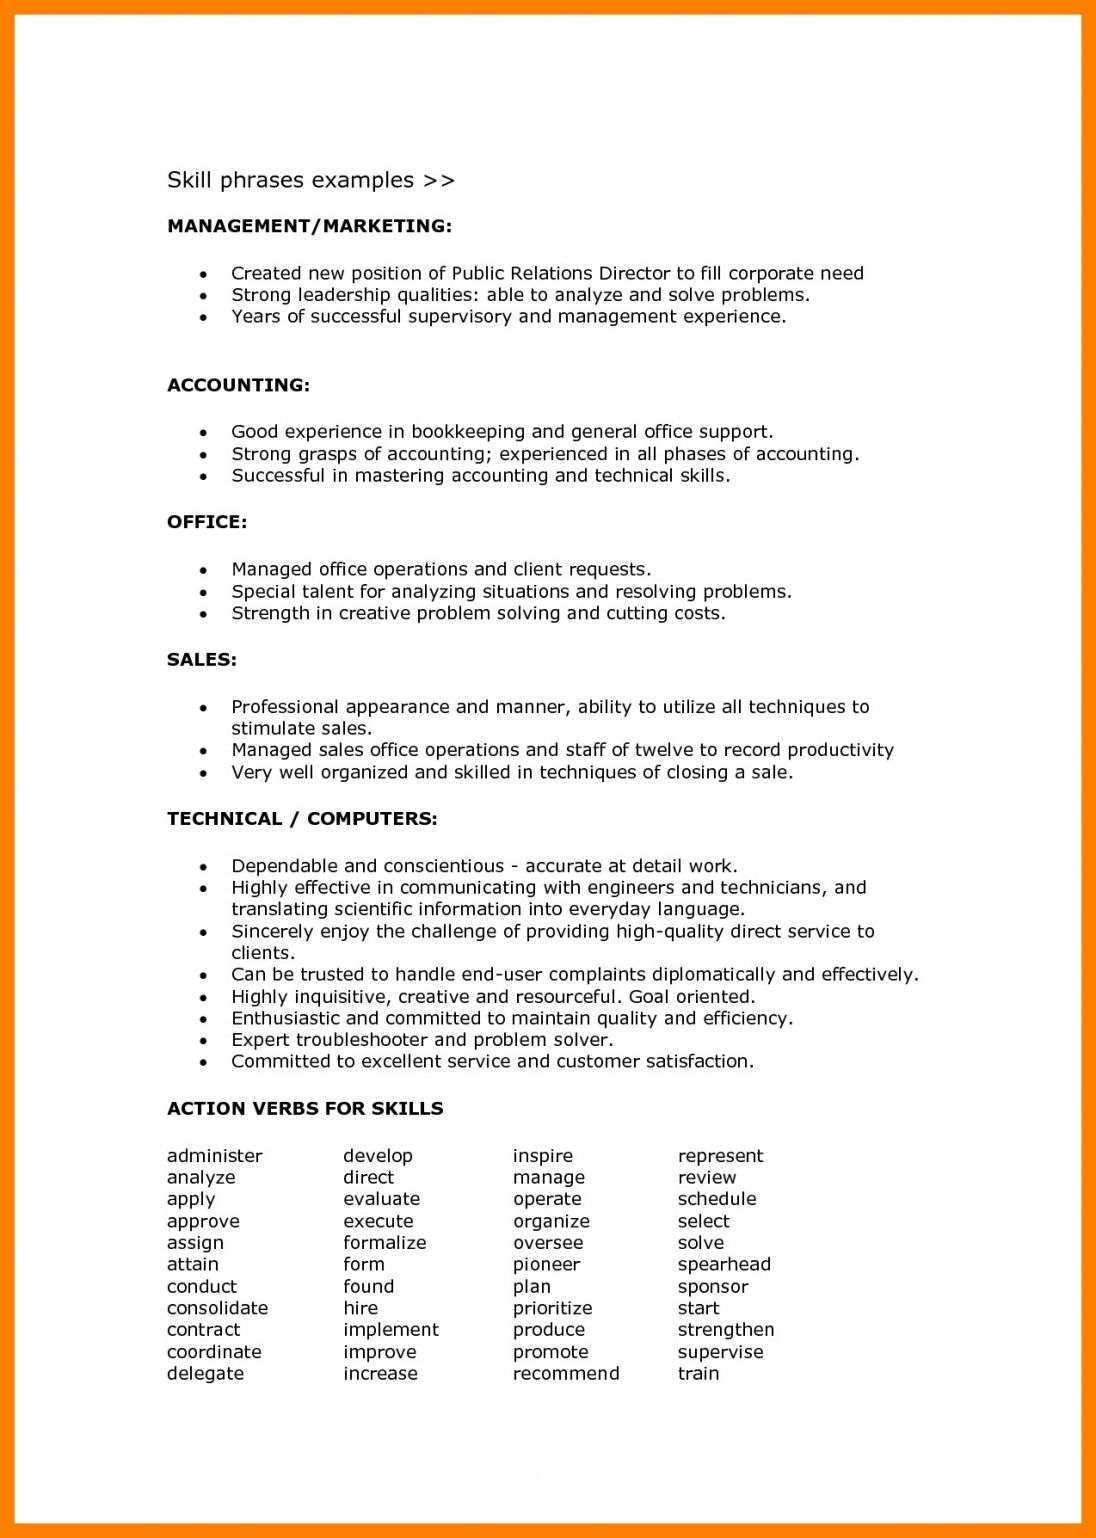 Language Skills Resume skills list, Resume skills